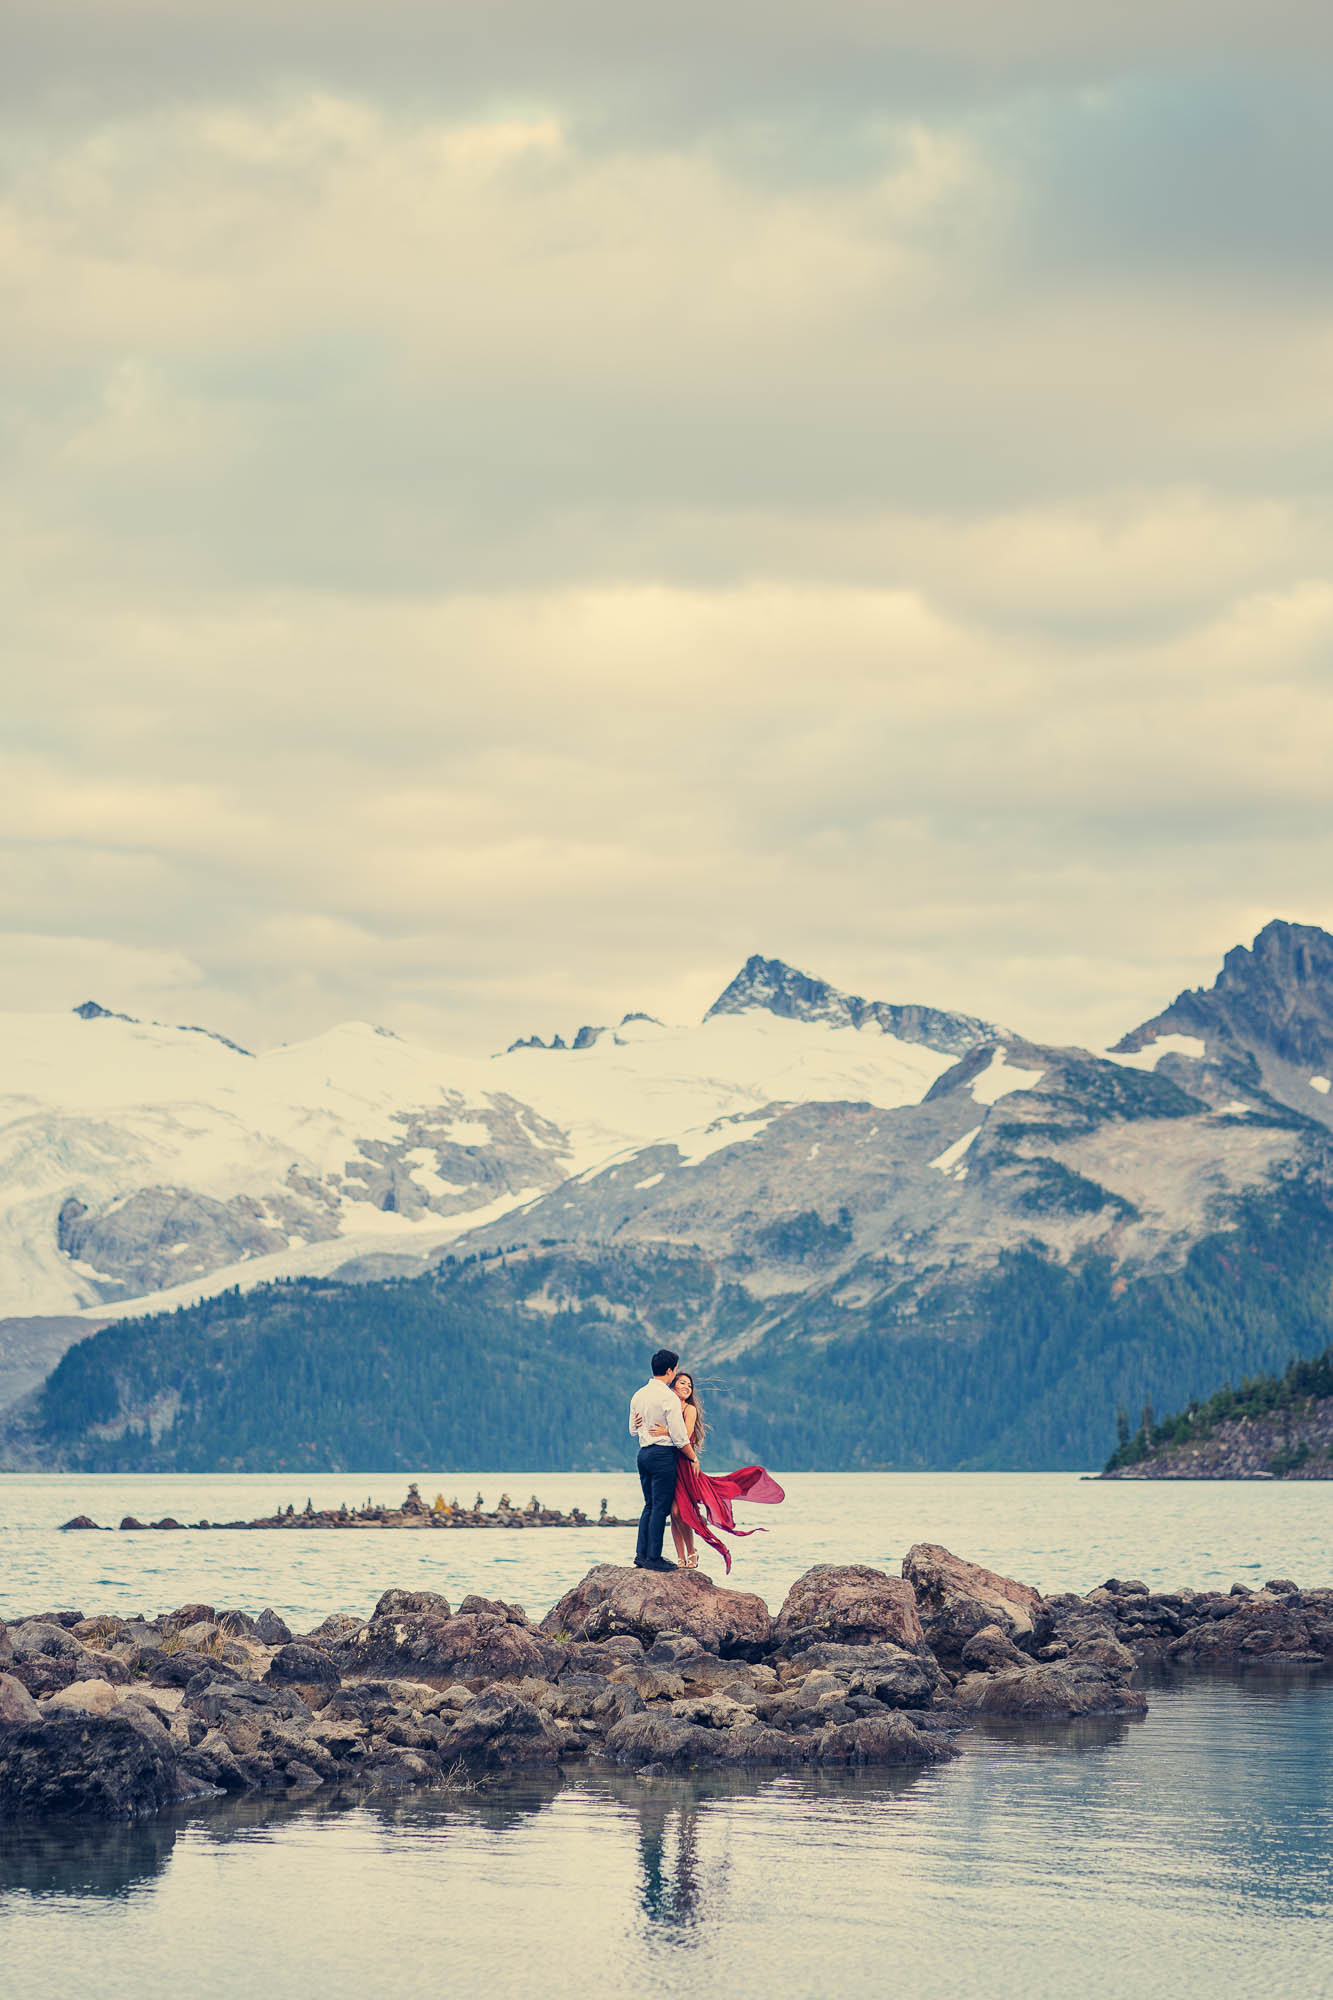 Lex & Josh Anita & JC Editorial Shoot Downtown Apartment Porteau Cove Garibaldi Lake-48.jpg